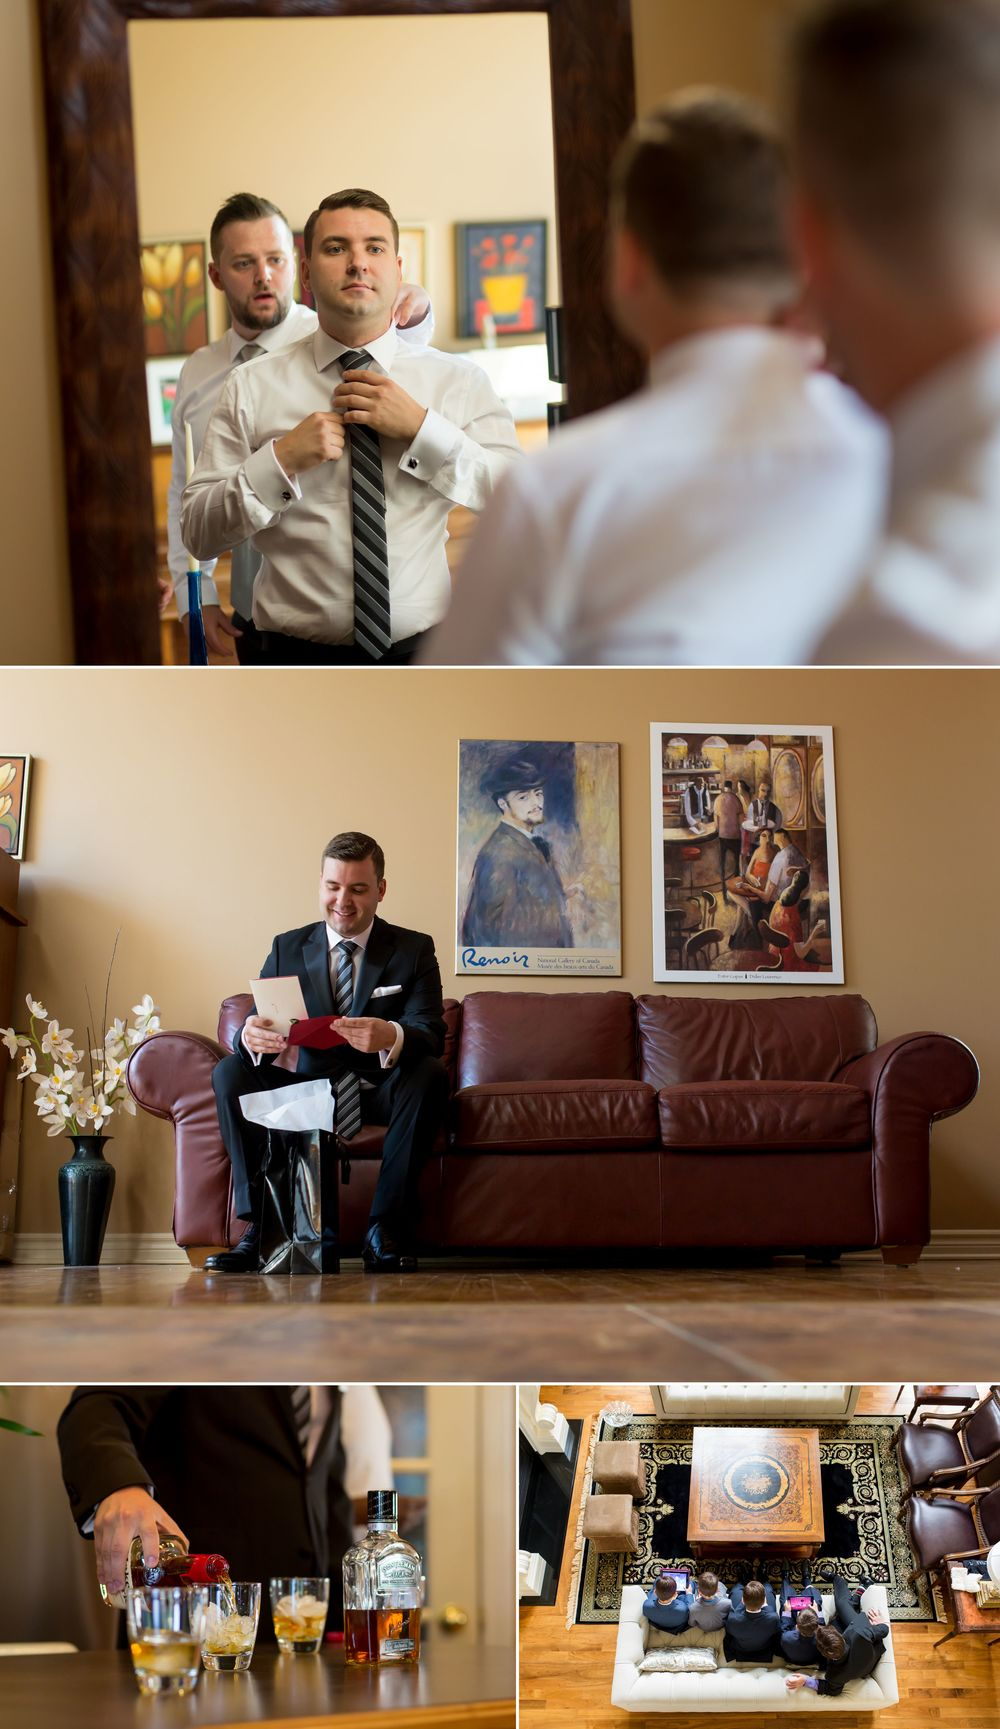 Groom and groomsmen getting ready for a wedding